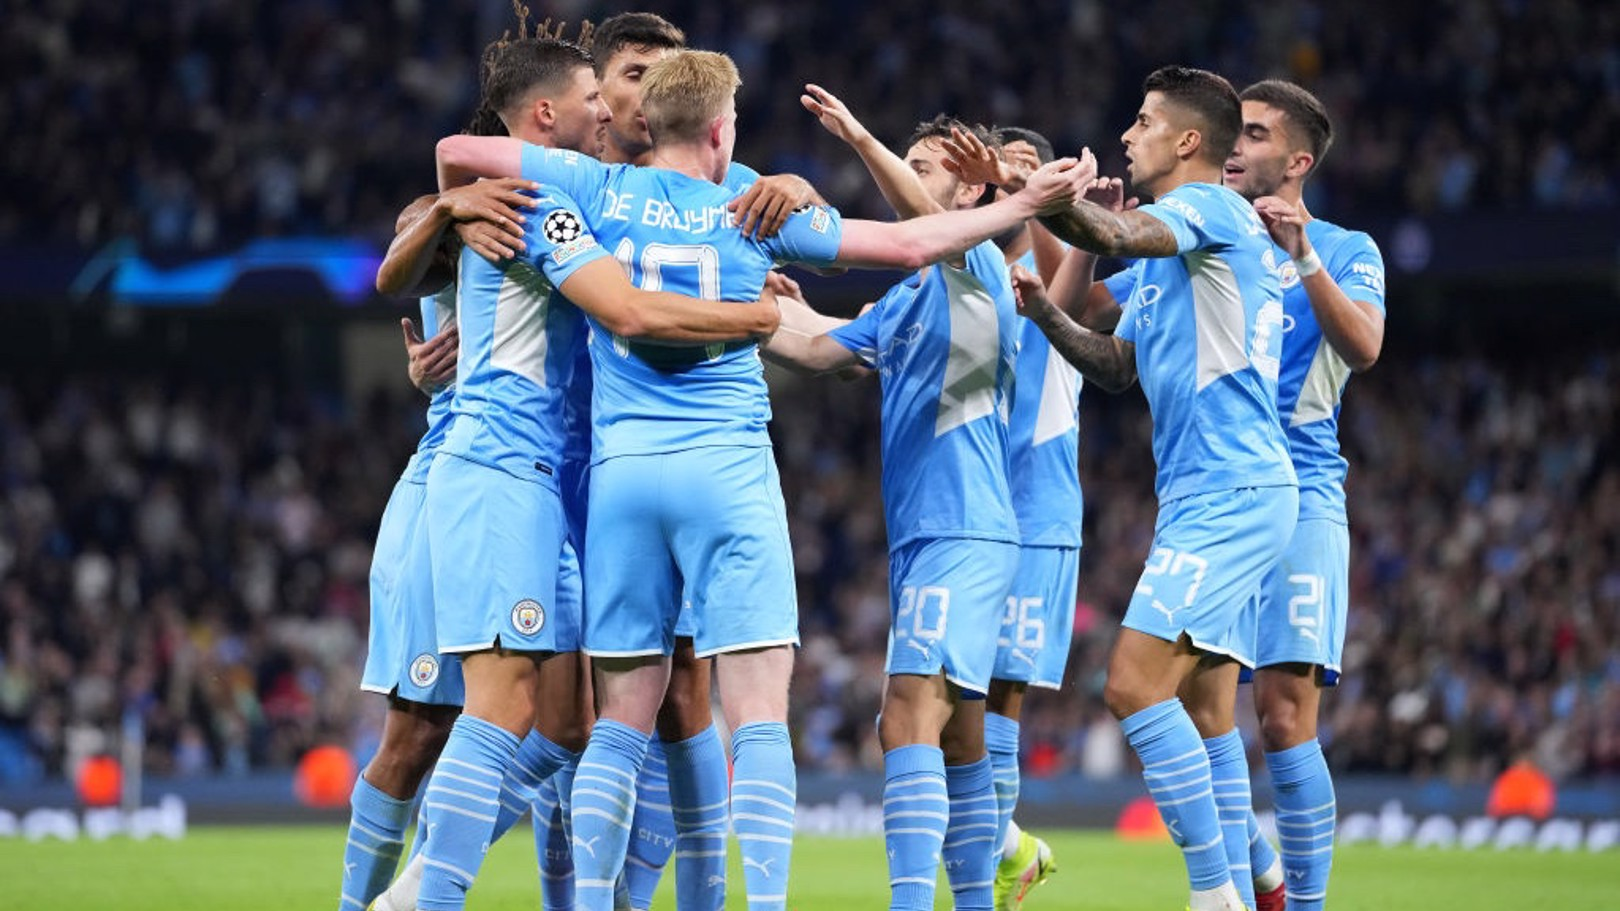 CENTRE OF ATTENTION: All hail KDB after his superb assist.